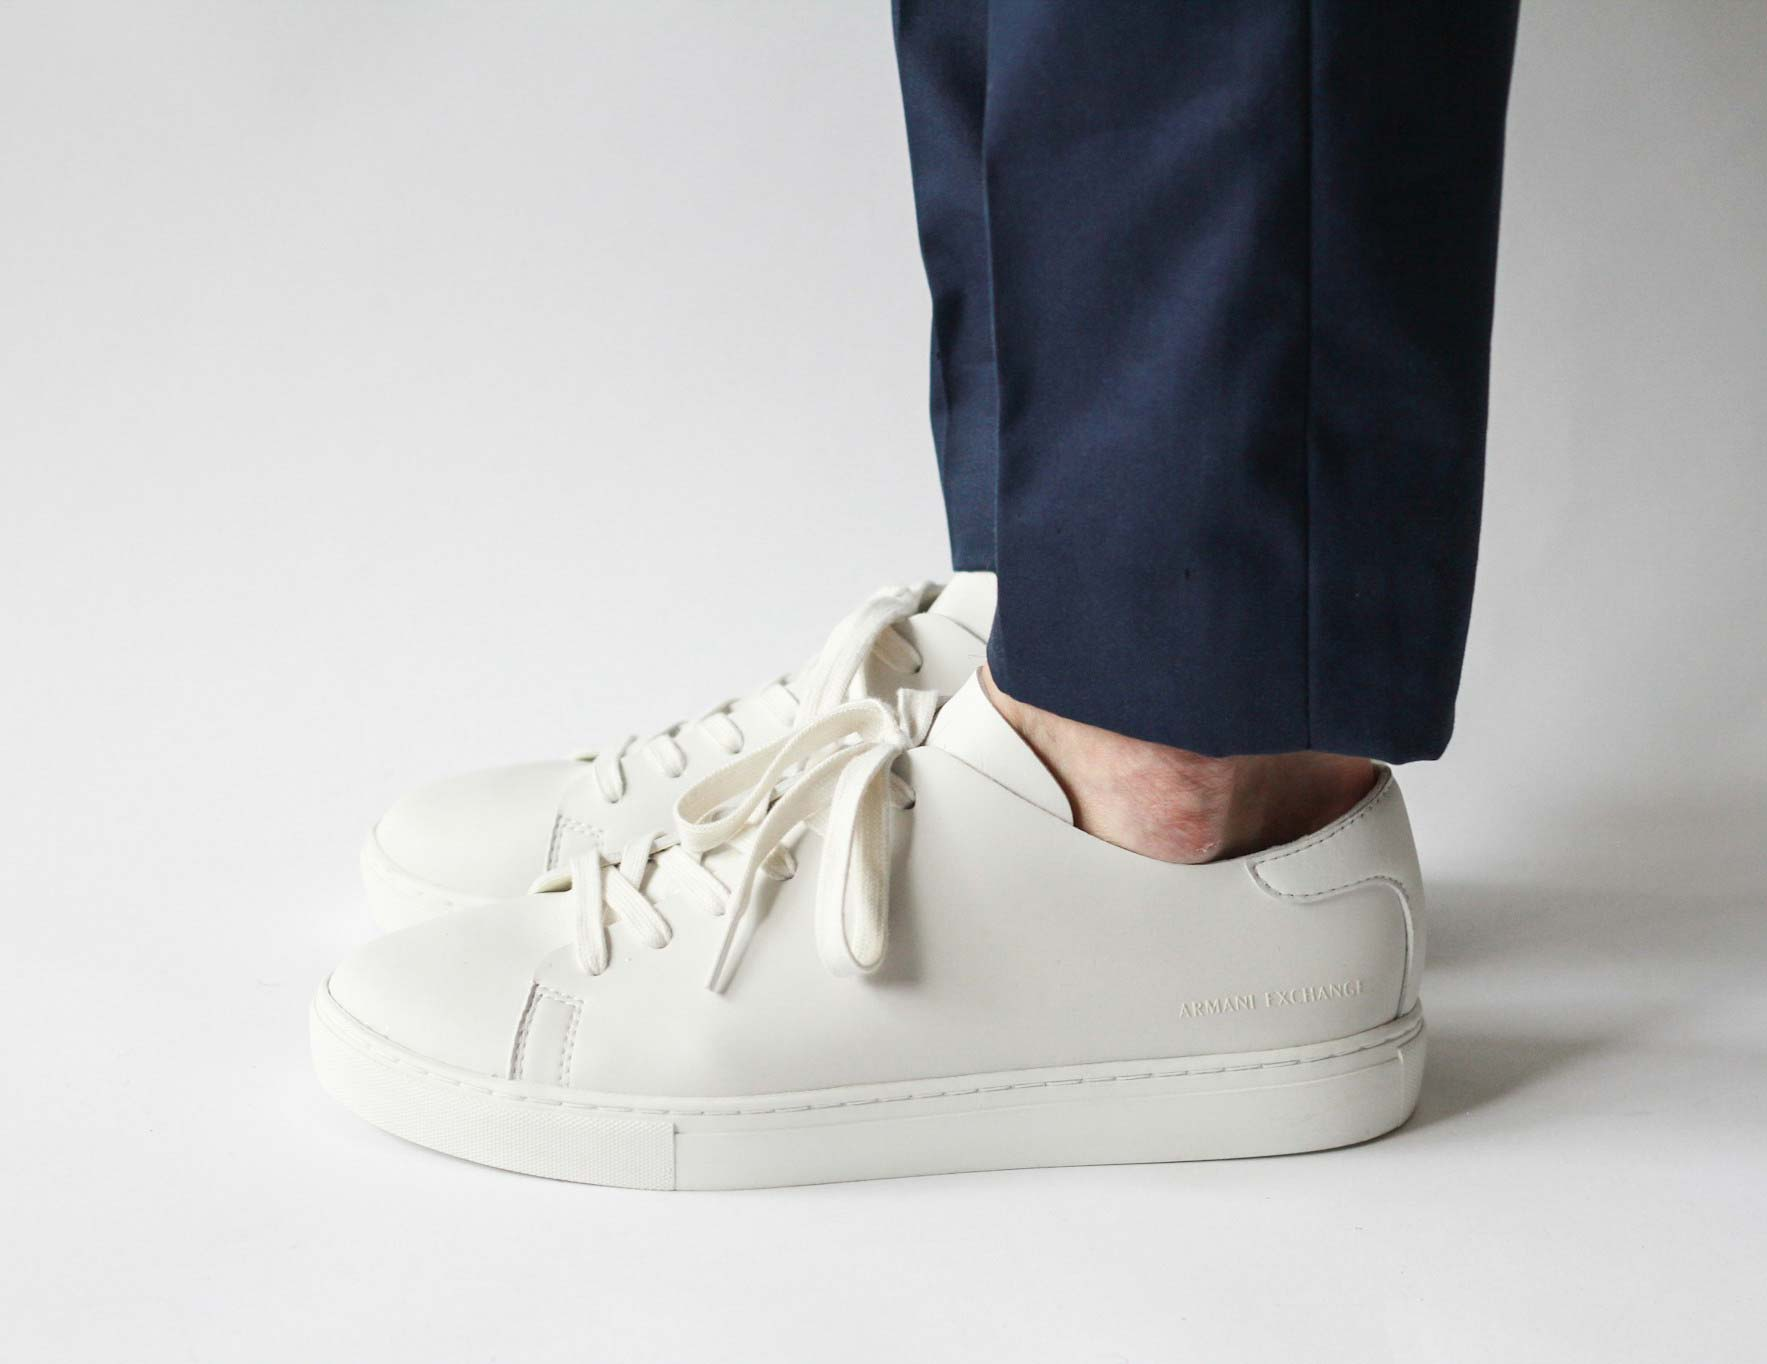 White Armani Exchange Sneakers